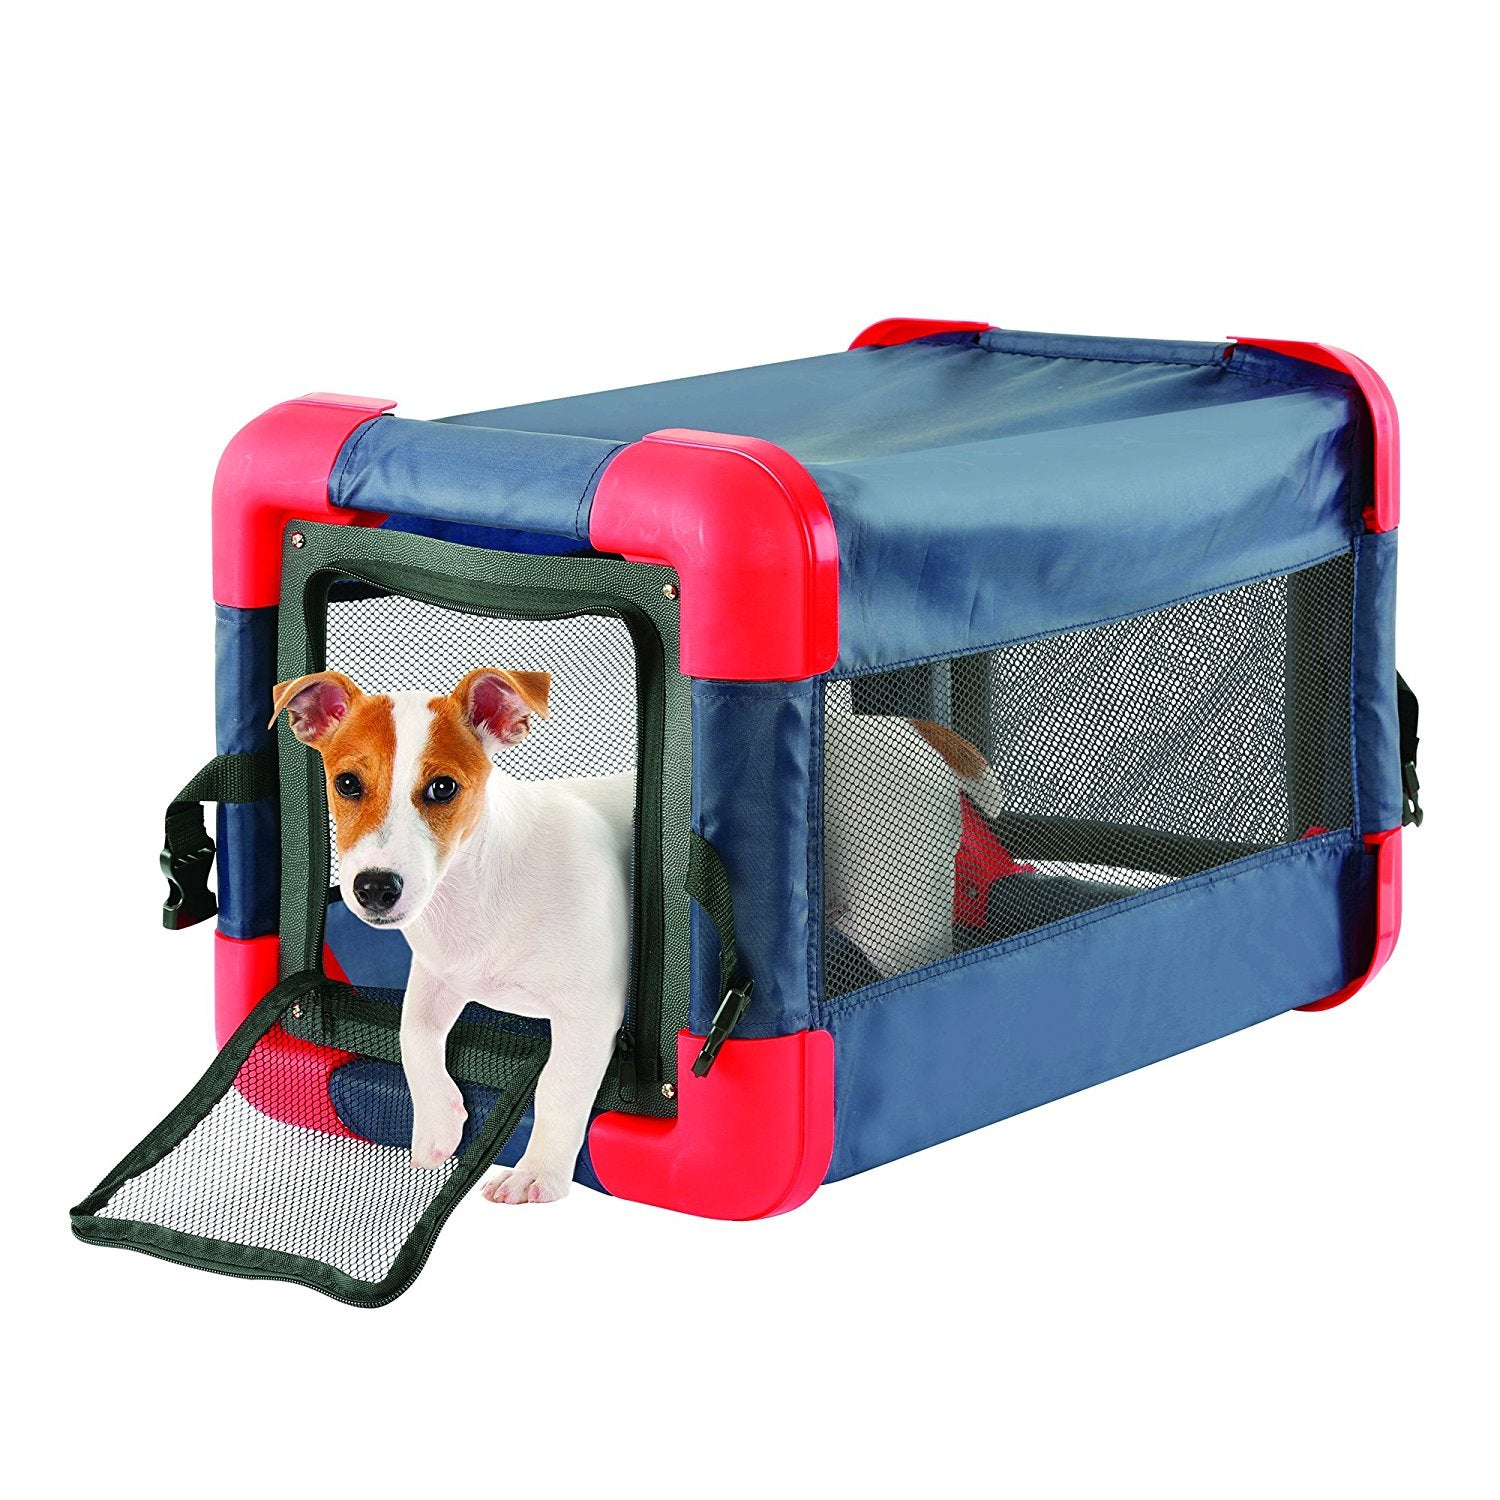 ETNA - Pop Up Pet Crate (4941) - Main